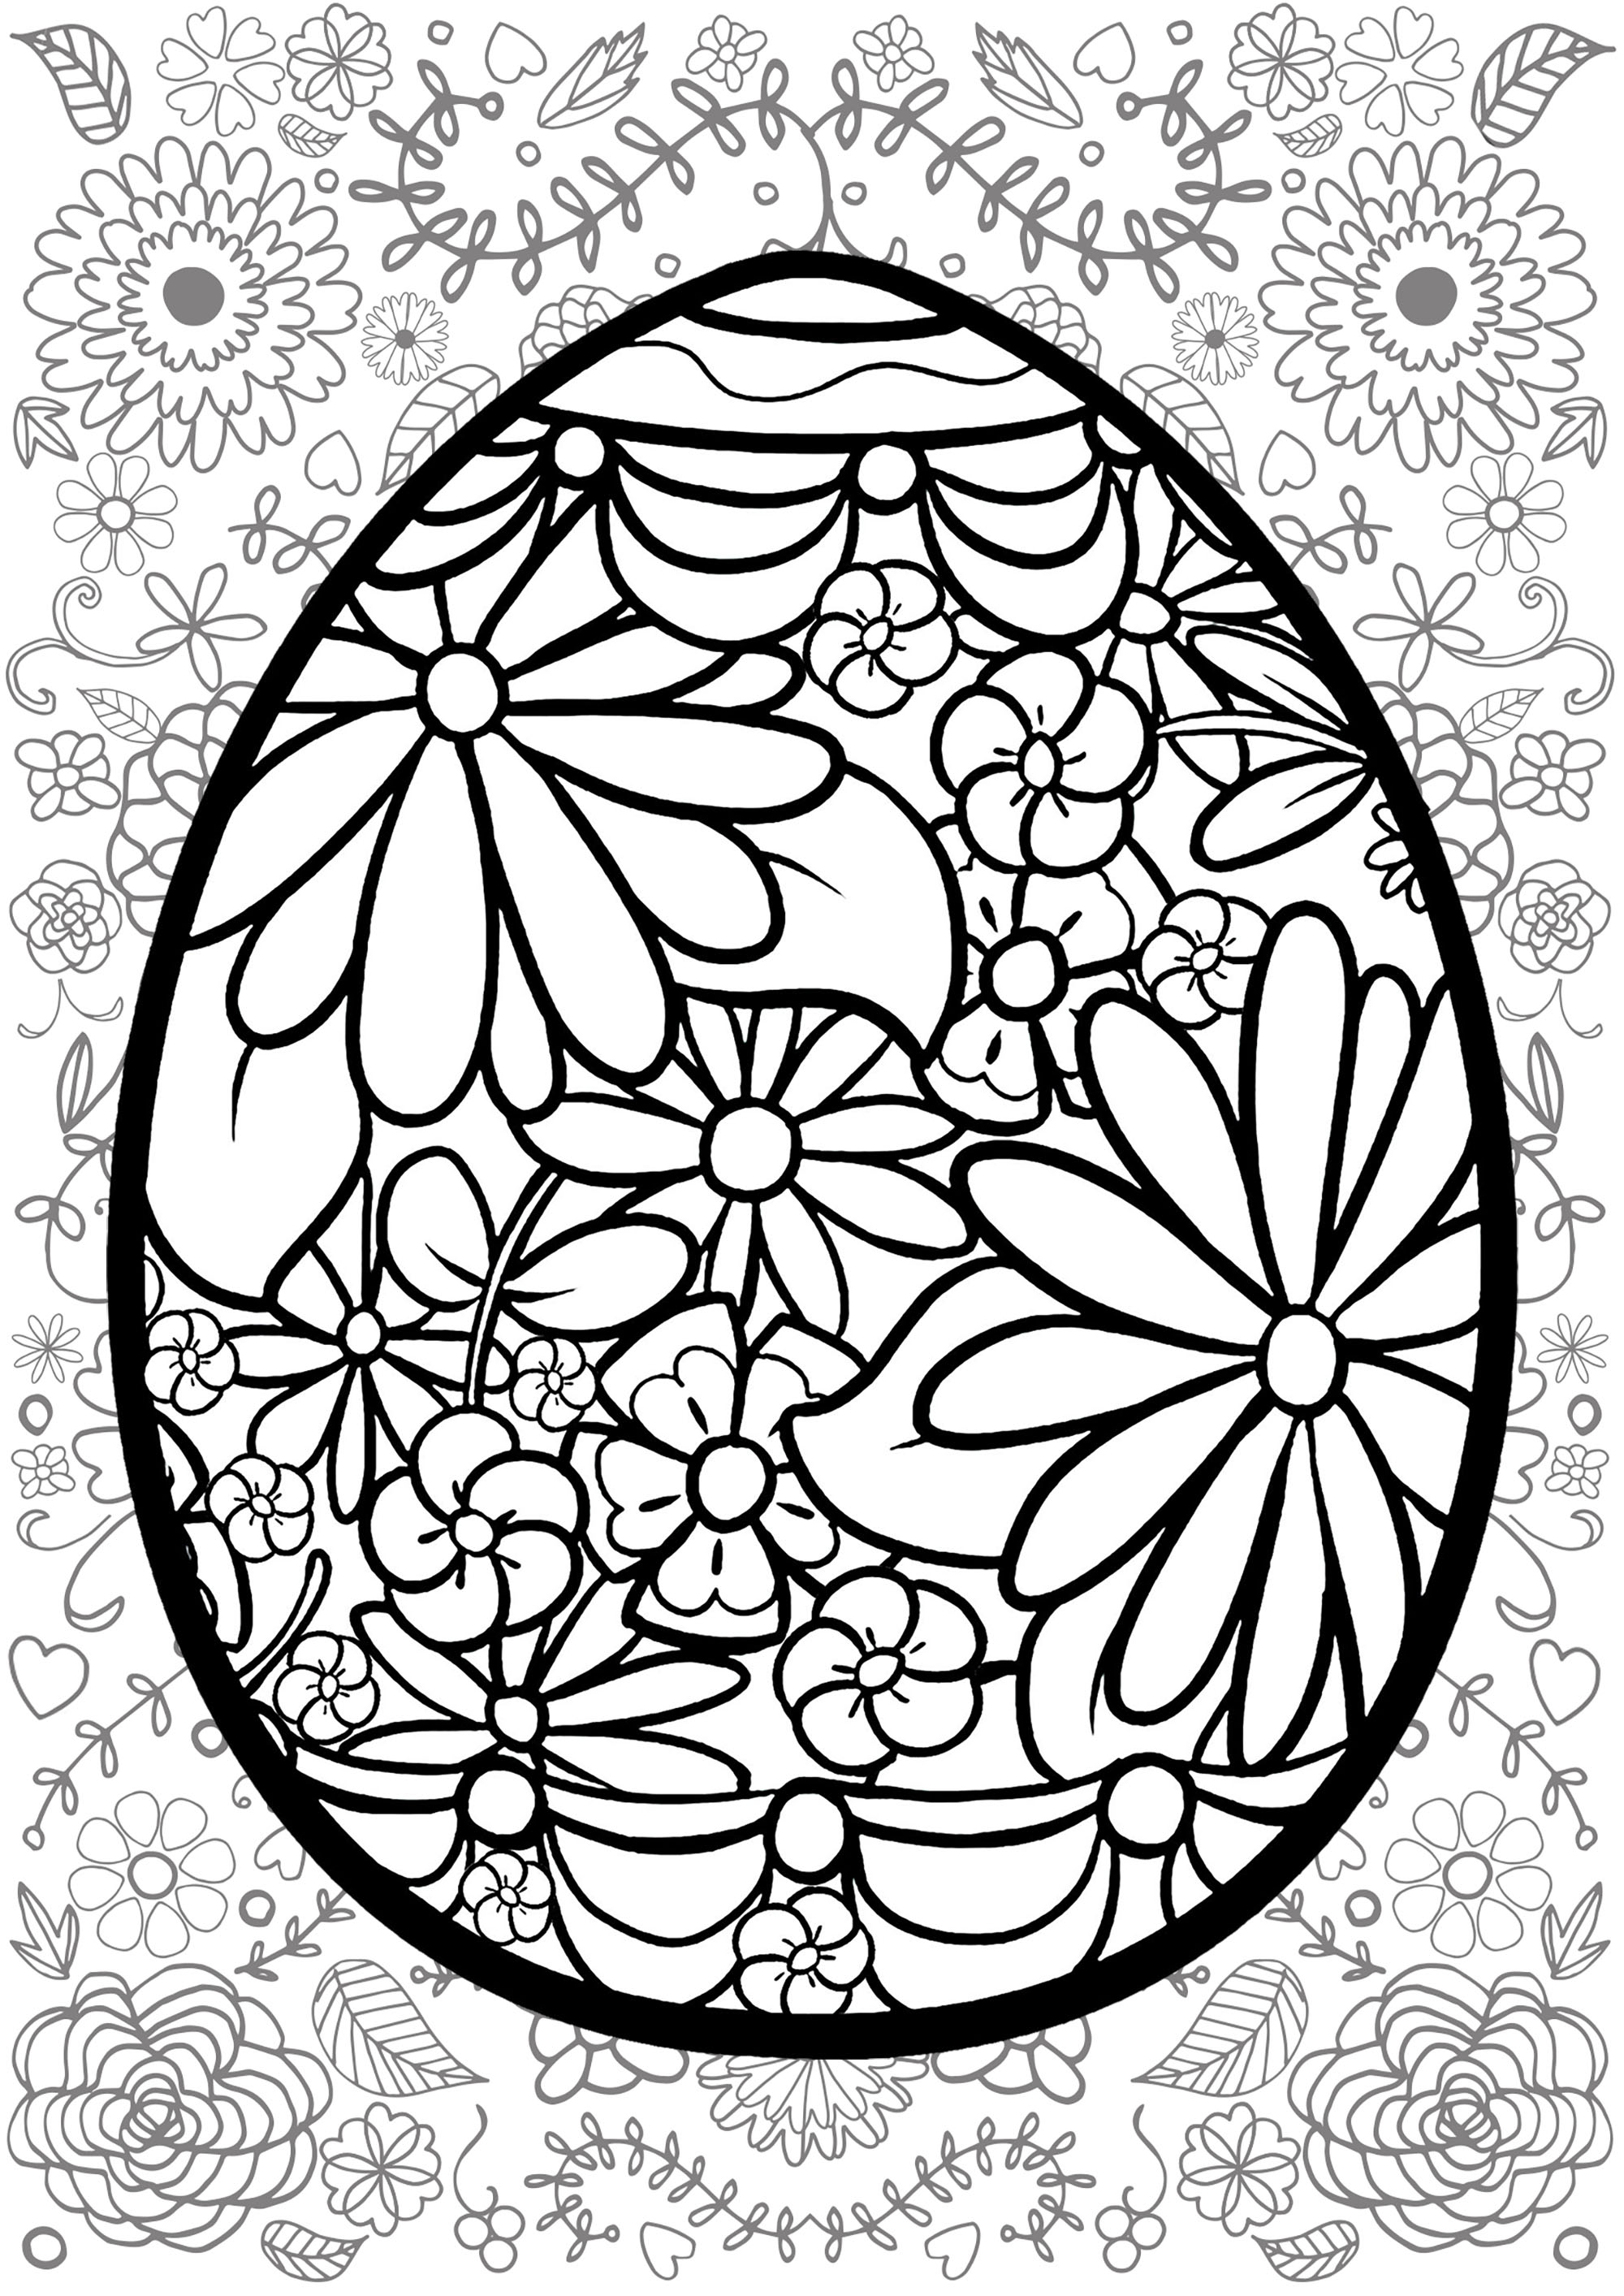 Easter egg with flowers, and flowered background